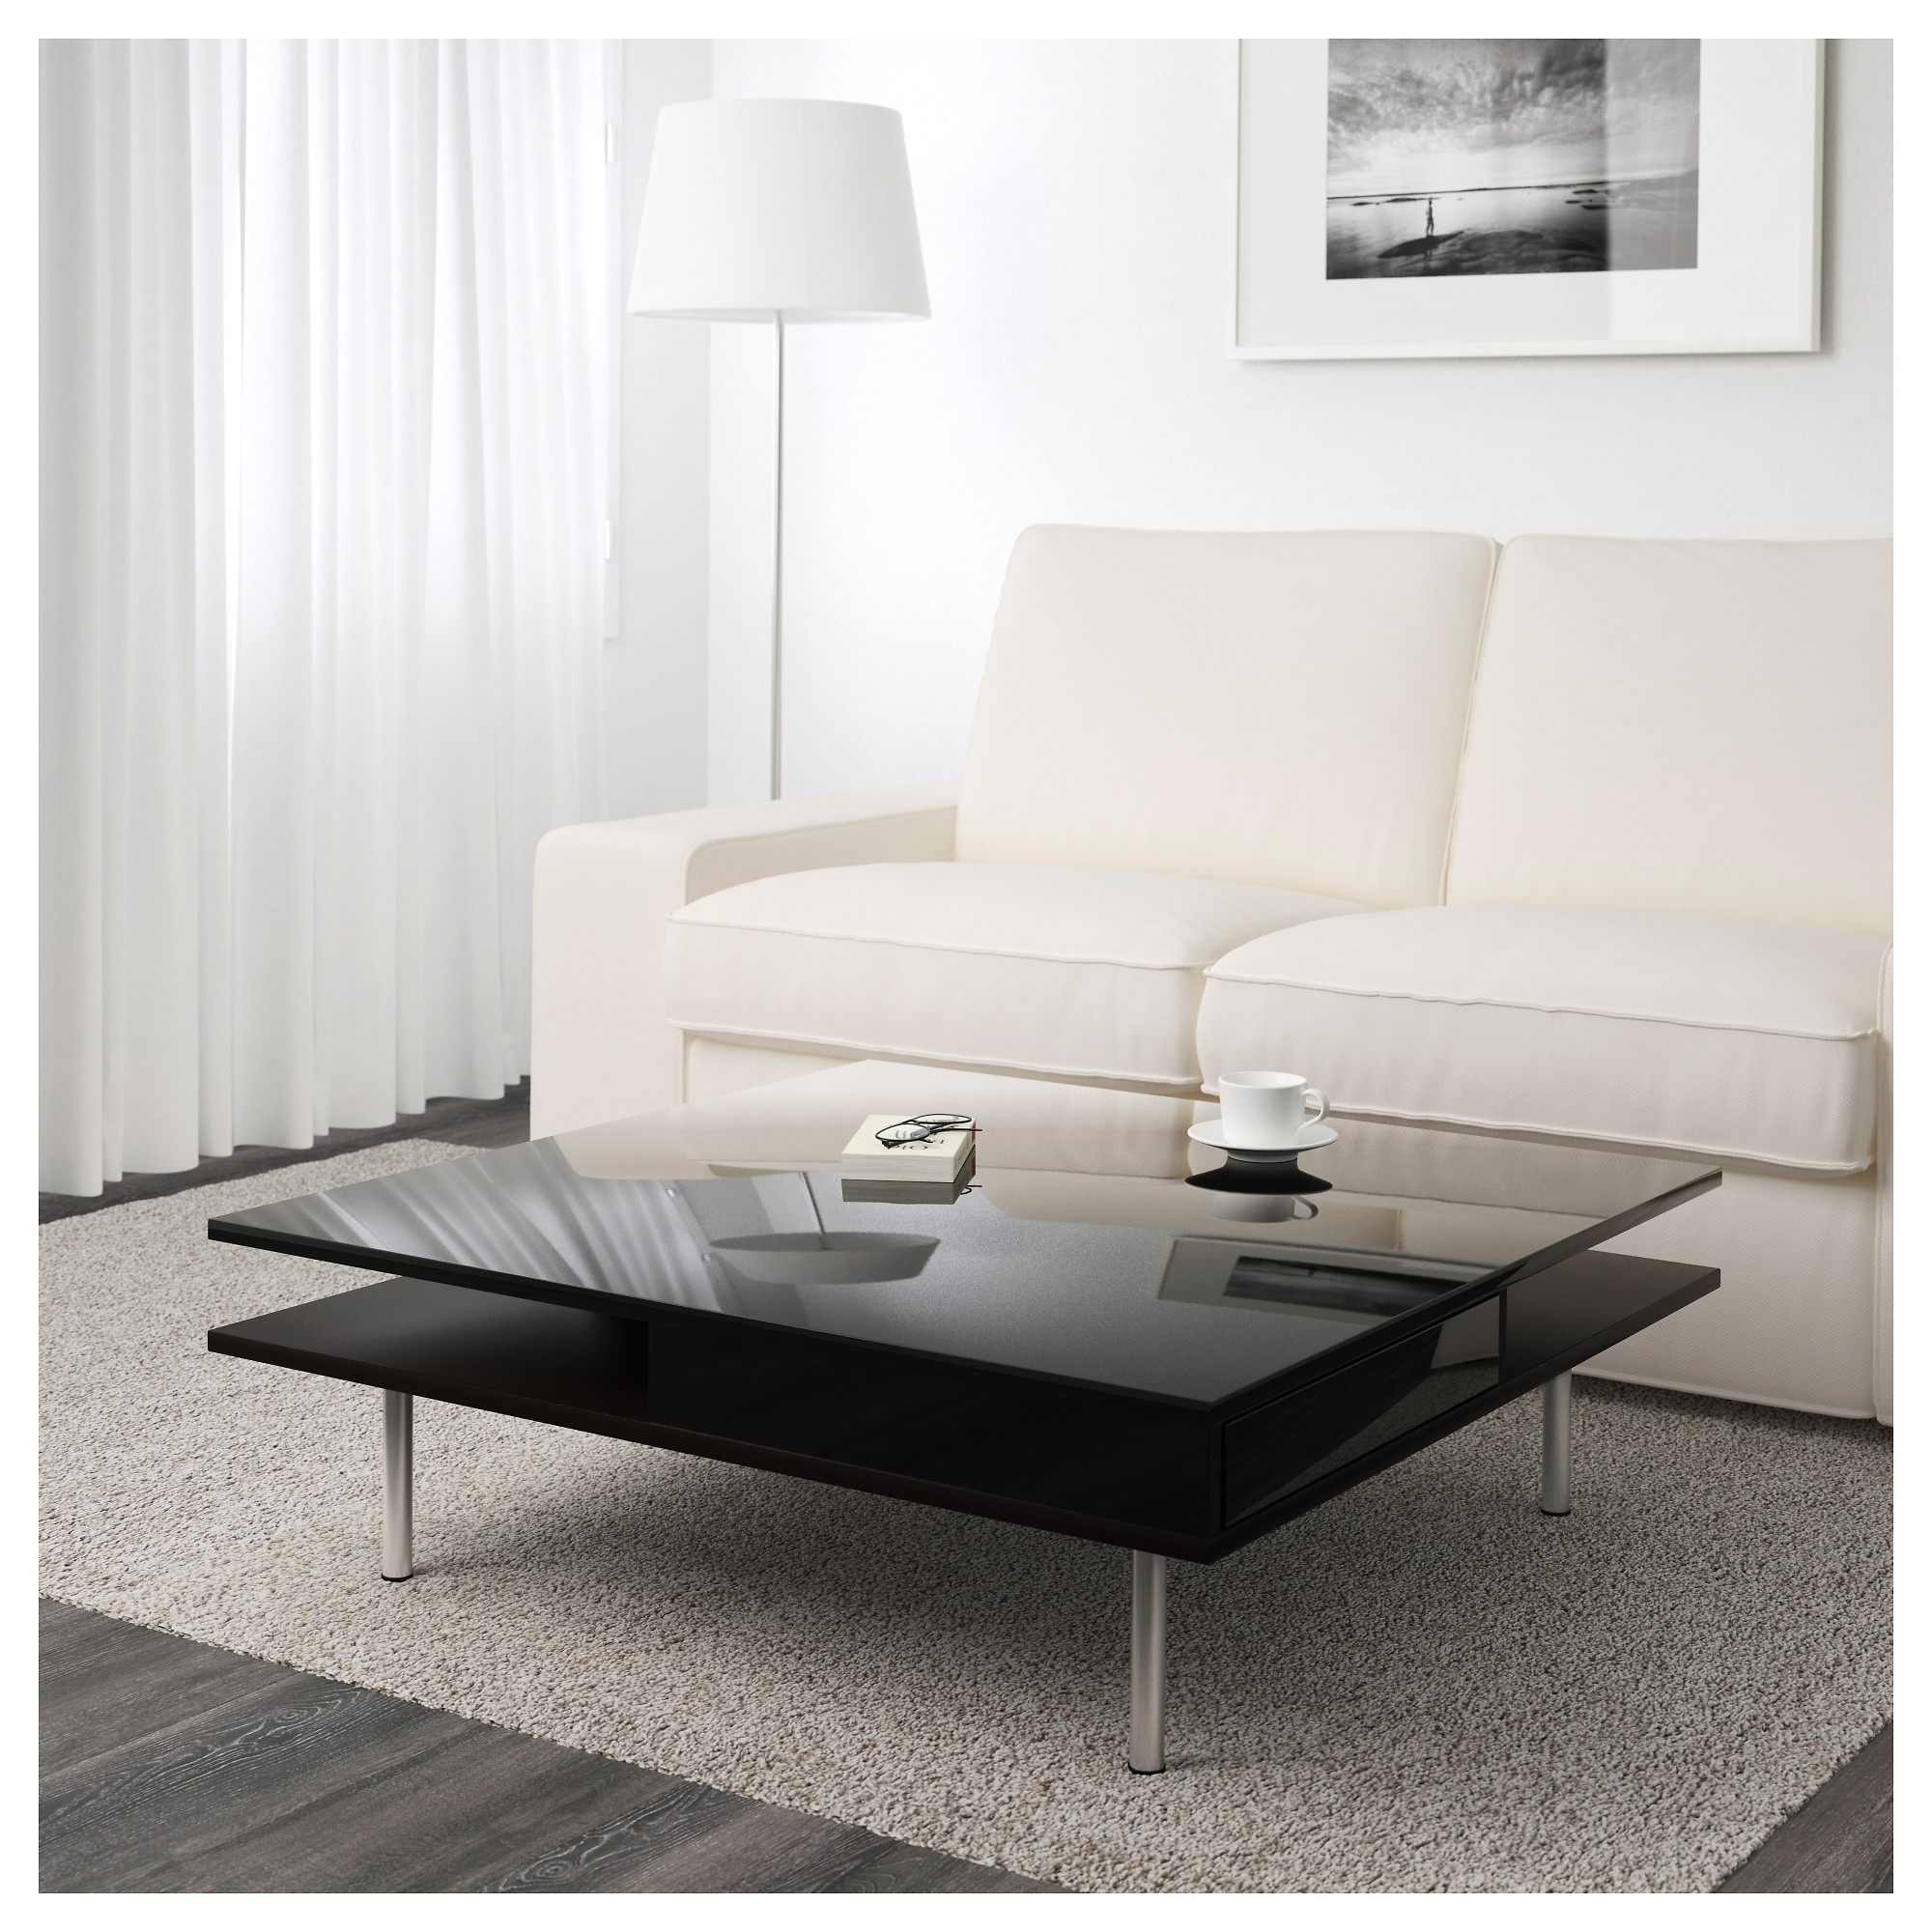 TOFTERYD Coffee table high gloss black IKEA